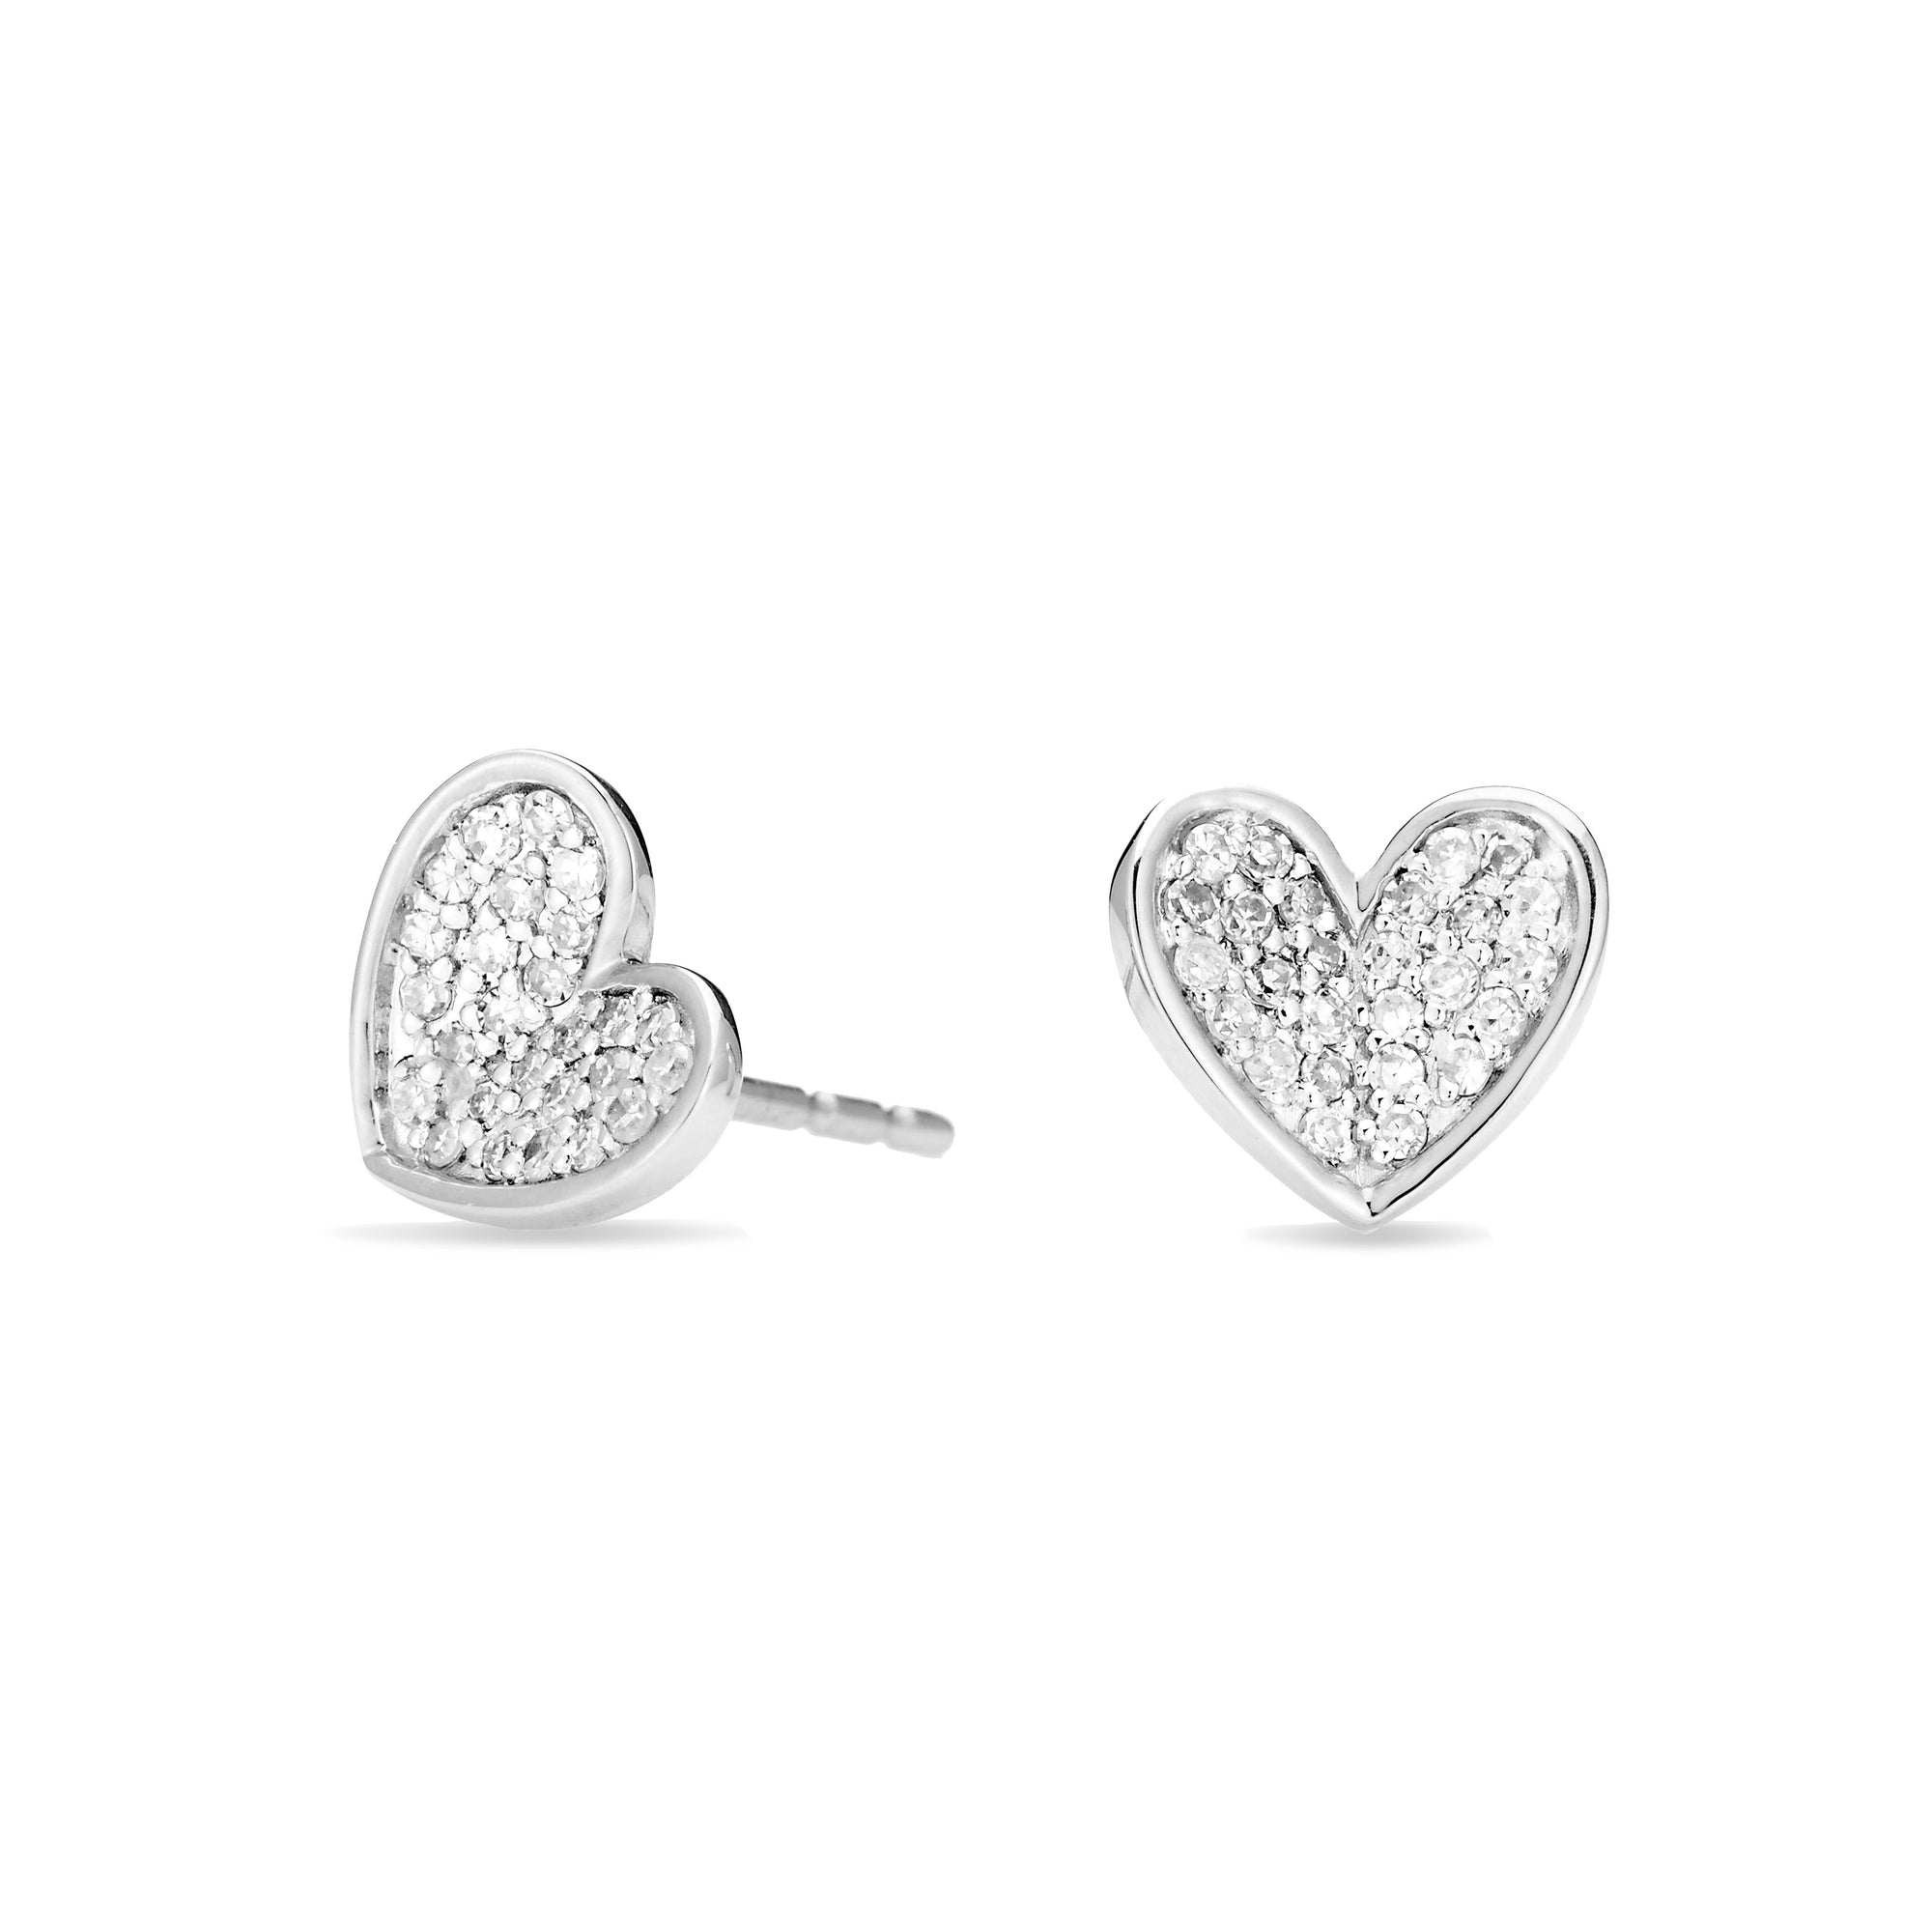 Adina Reyter Tiny Pavé Folded Heart Posts